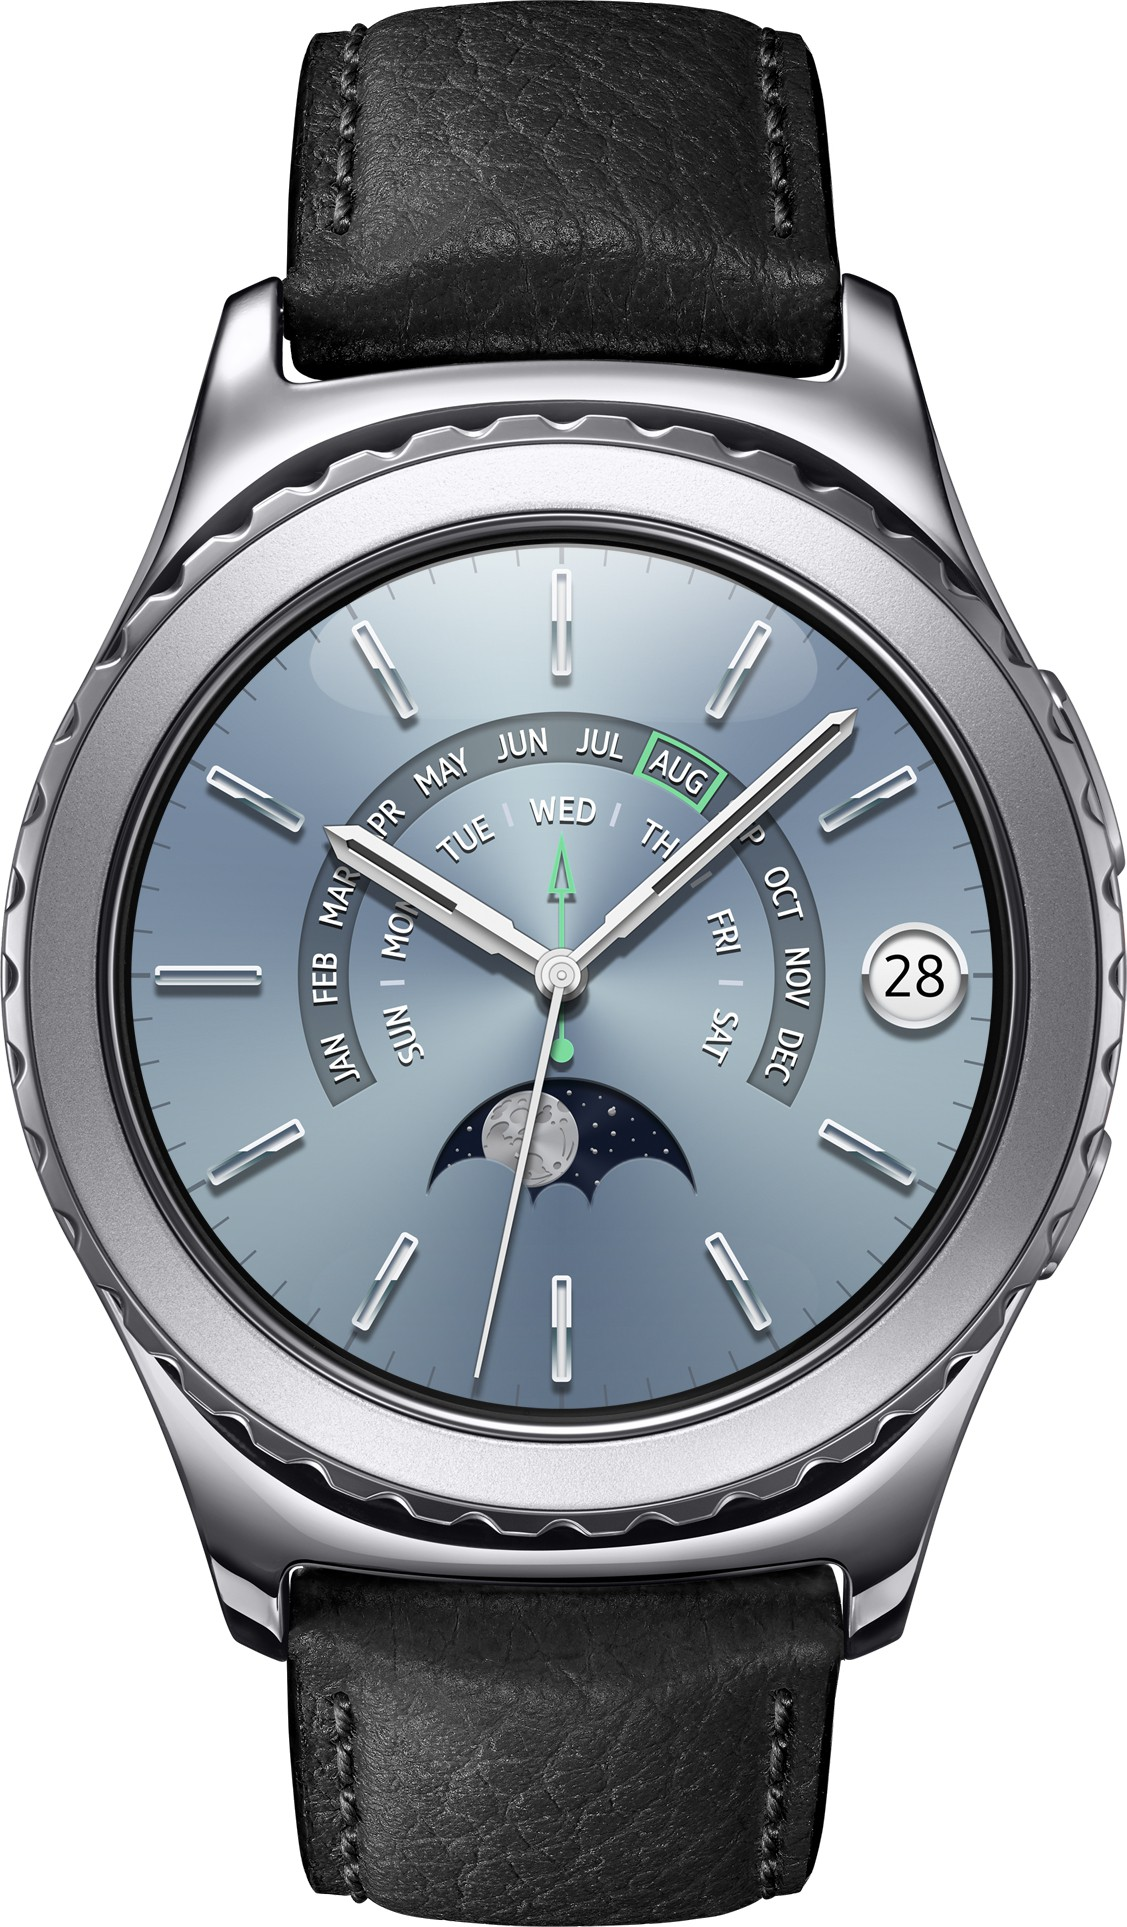 Deals - Noida - Samsung Gear S2 <br> Up to 45% Off<br> Category - wearable_smart_devices<br> Business - Flipkart.com